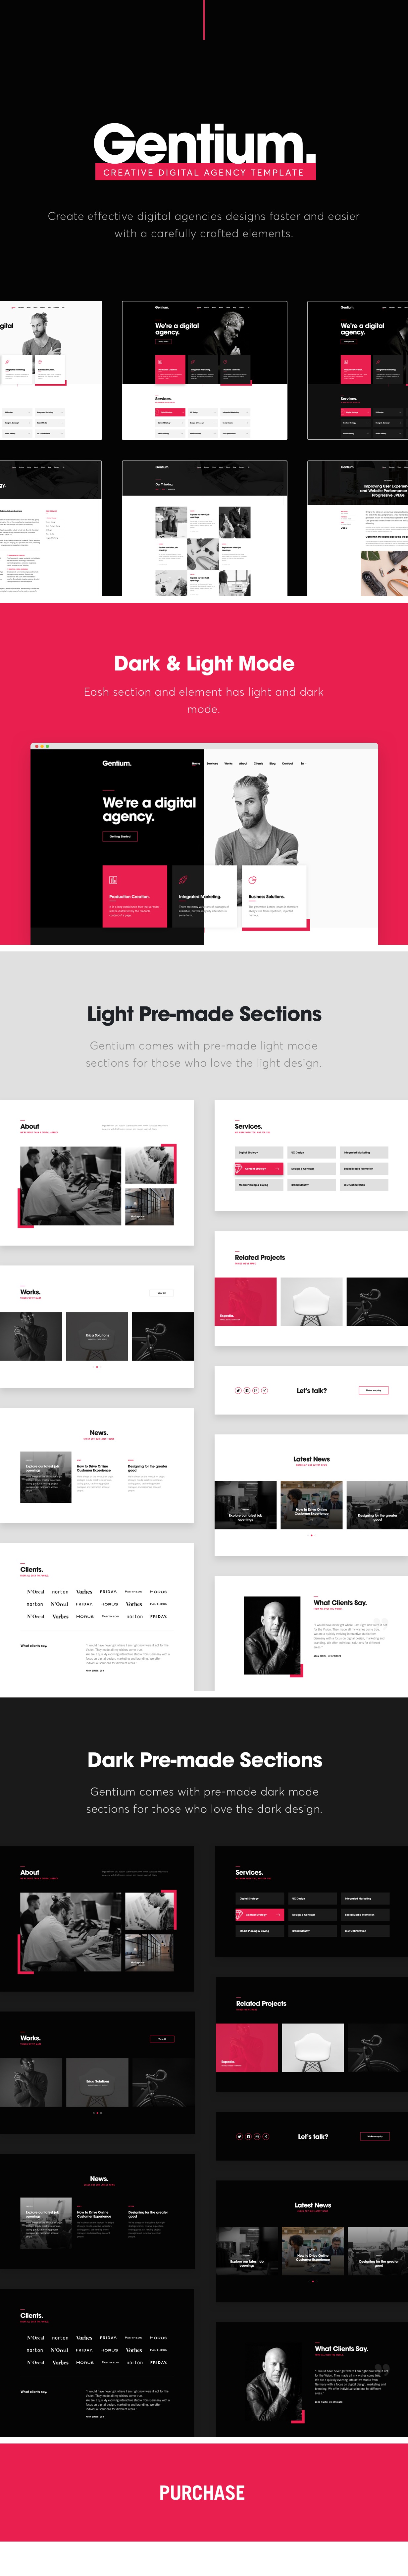 Gentium - A creative digital and marketing agency OnePage Template - 2